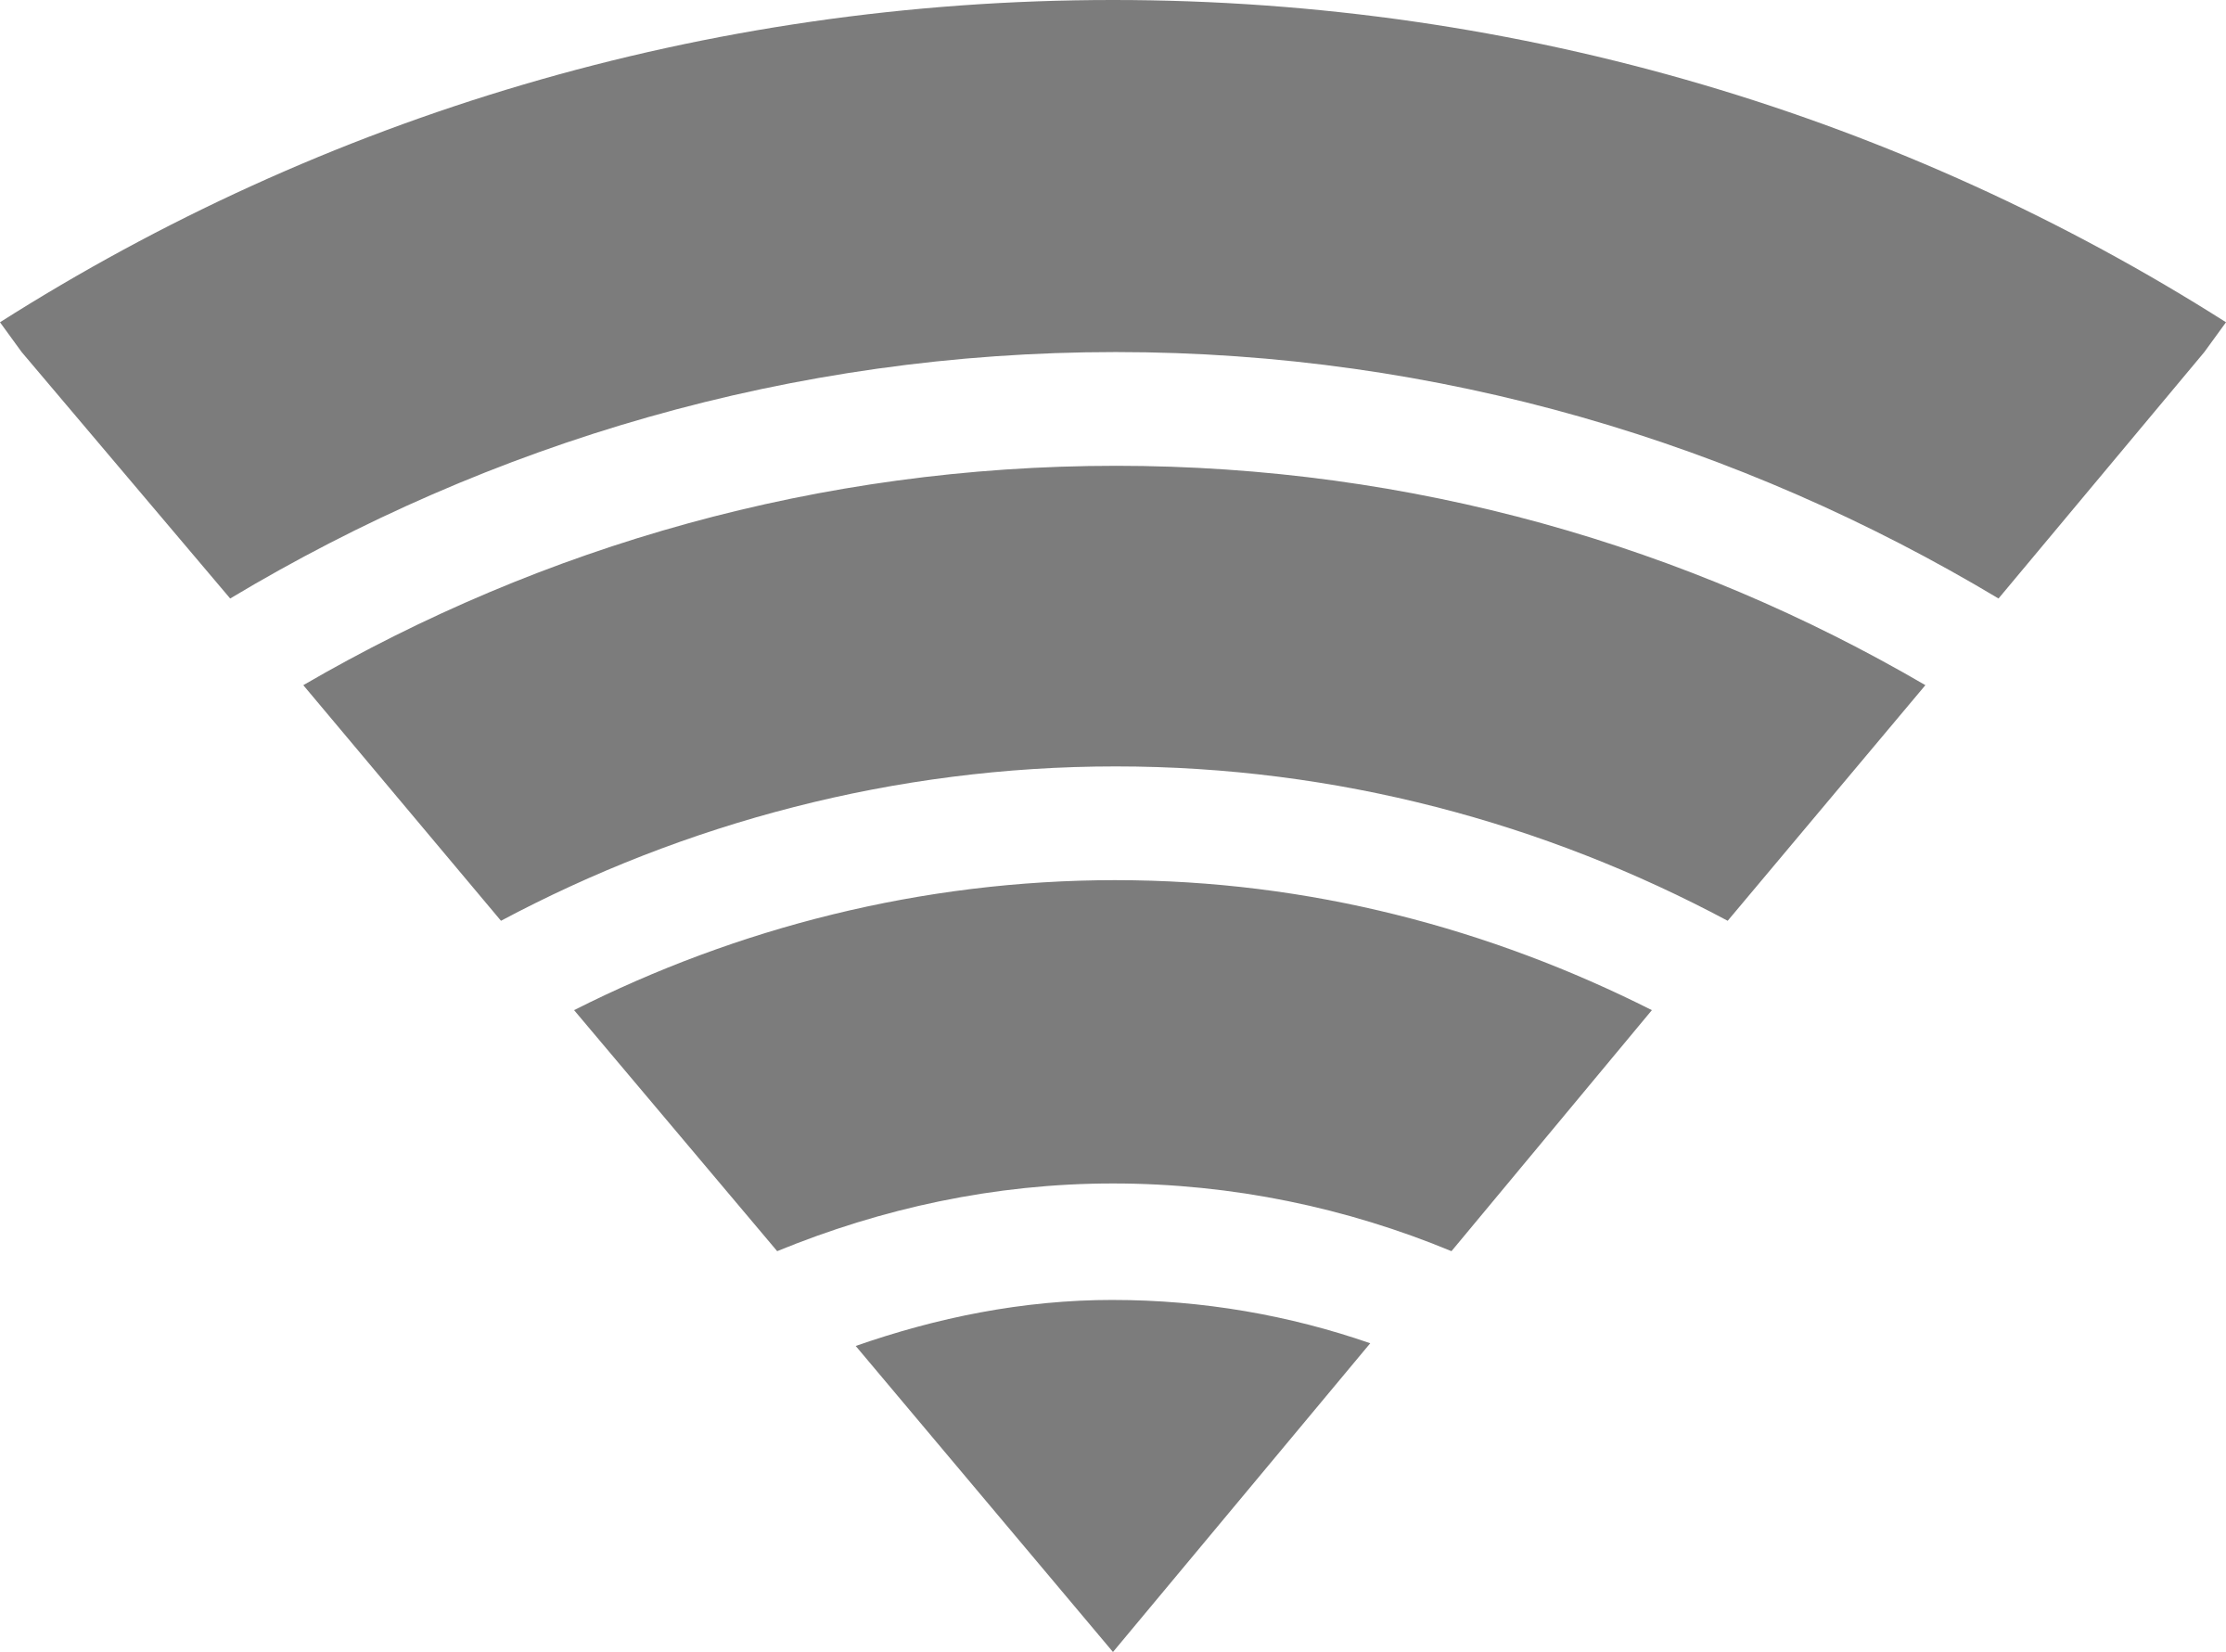 WLAN Icon by dp1991